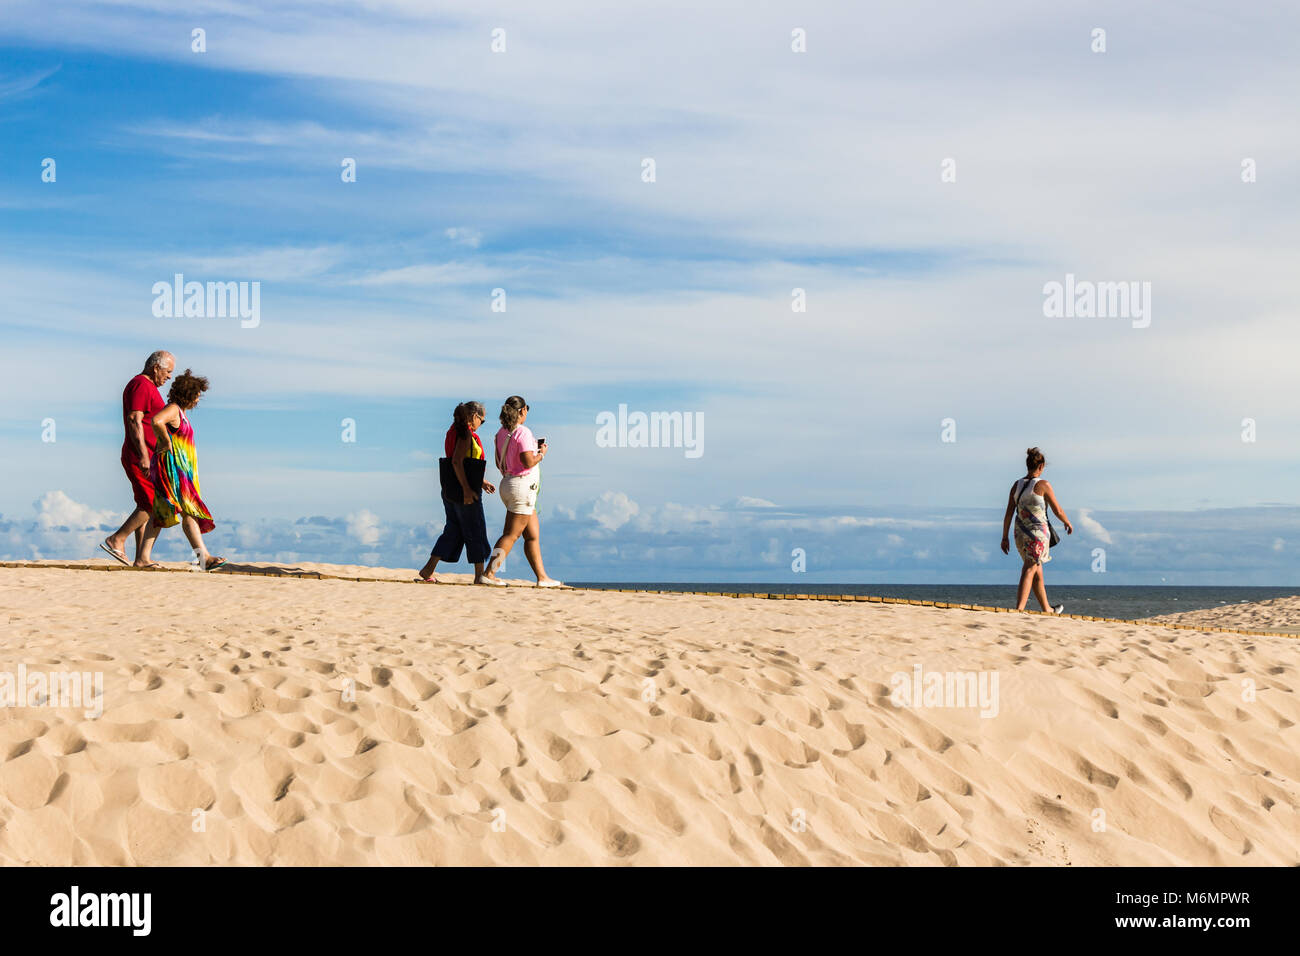 Punta Del Este, Uruguay - February 28th, 2018: People walking in the beach to visit La Mano, the sculpture made Stock Photo